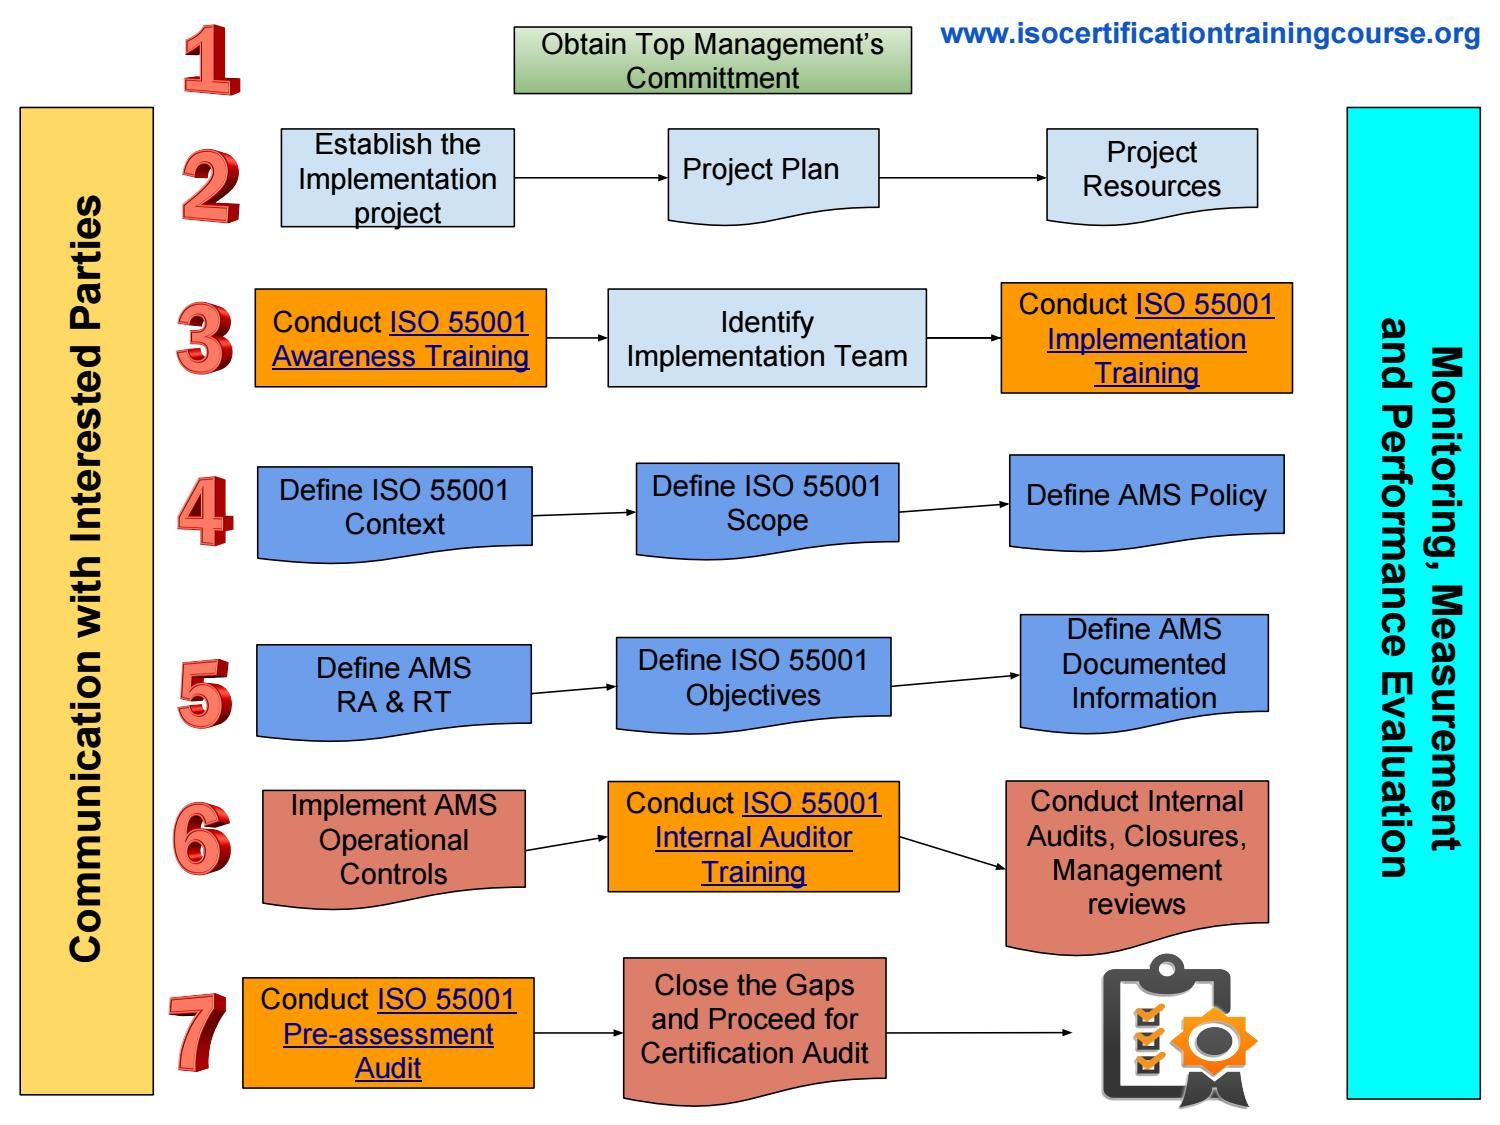 How to prepare for iso 55001 certification process step by step how to prepare for iso 55001 certification process step by step for auditee organizations 1betcityfo Gallery